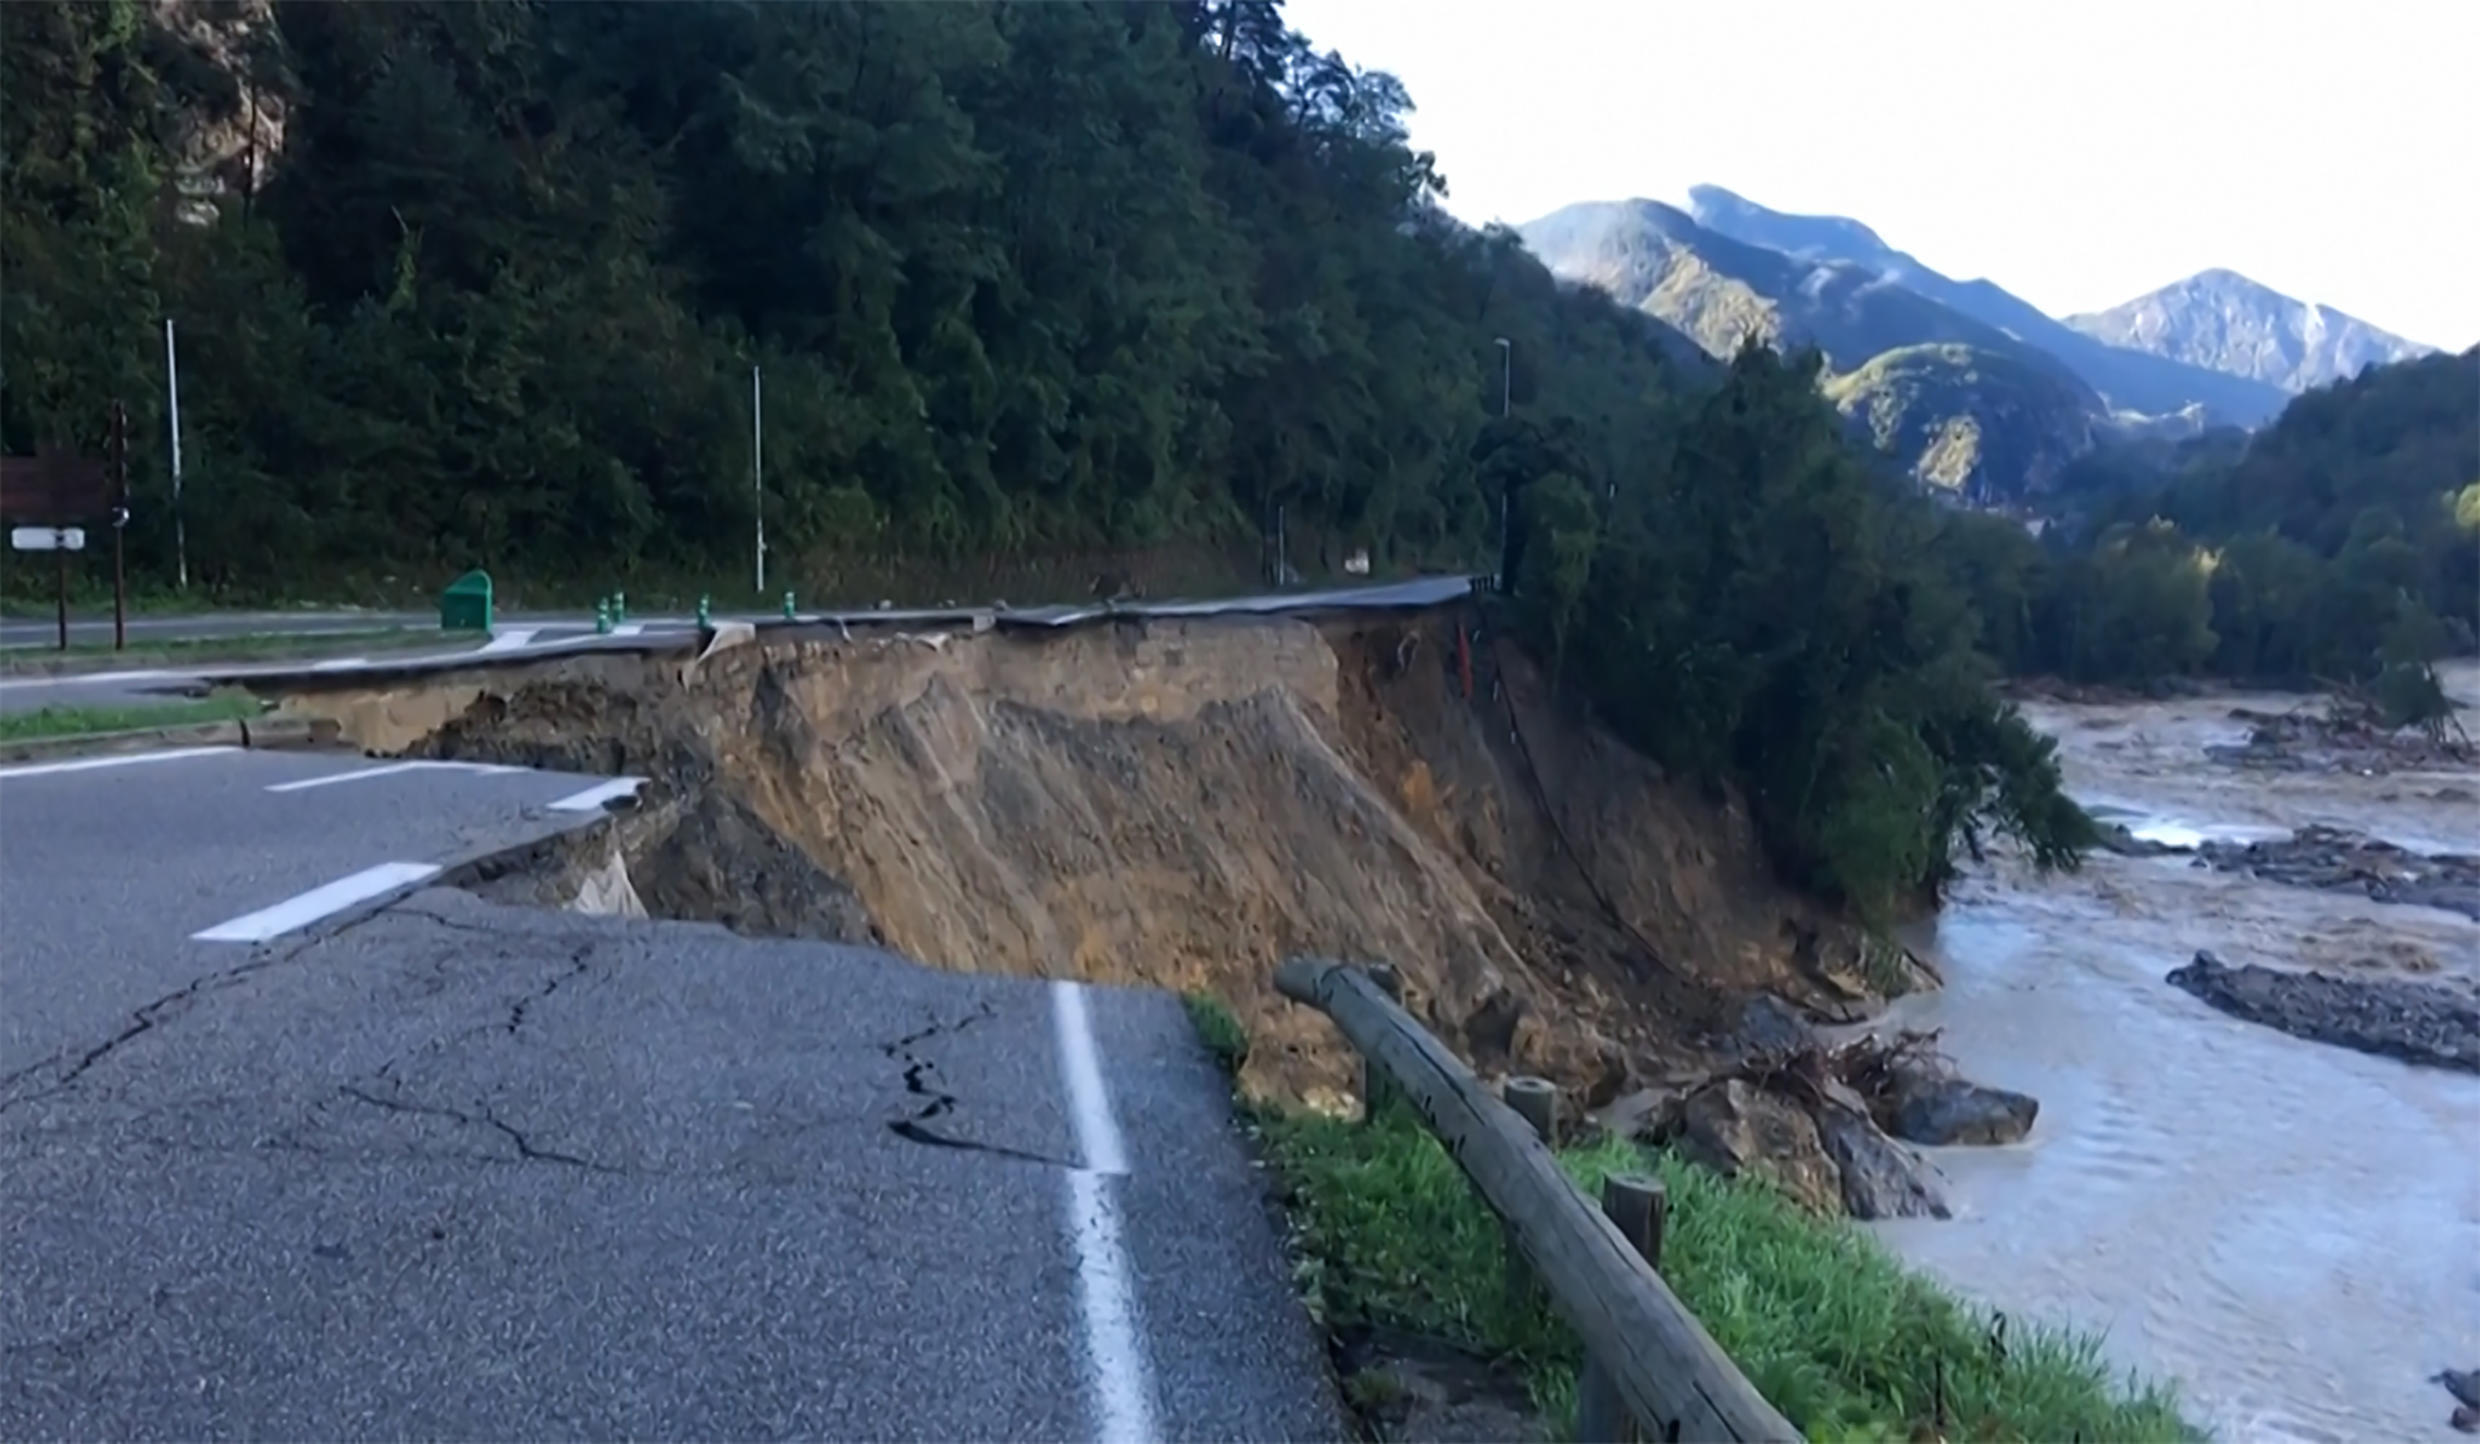 The downpour swept away several roads including this one at Bollene-Vesubie, a valley in Nice's hinterland.